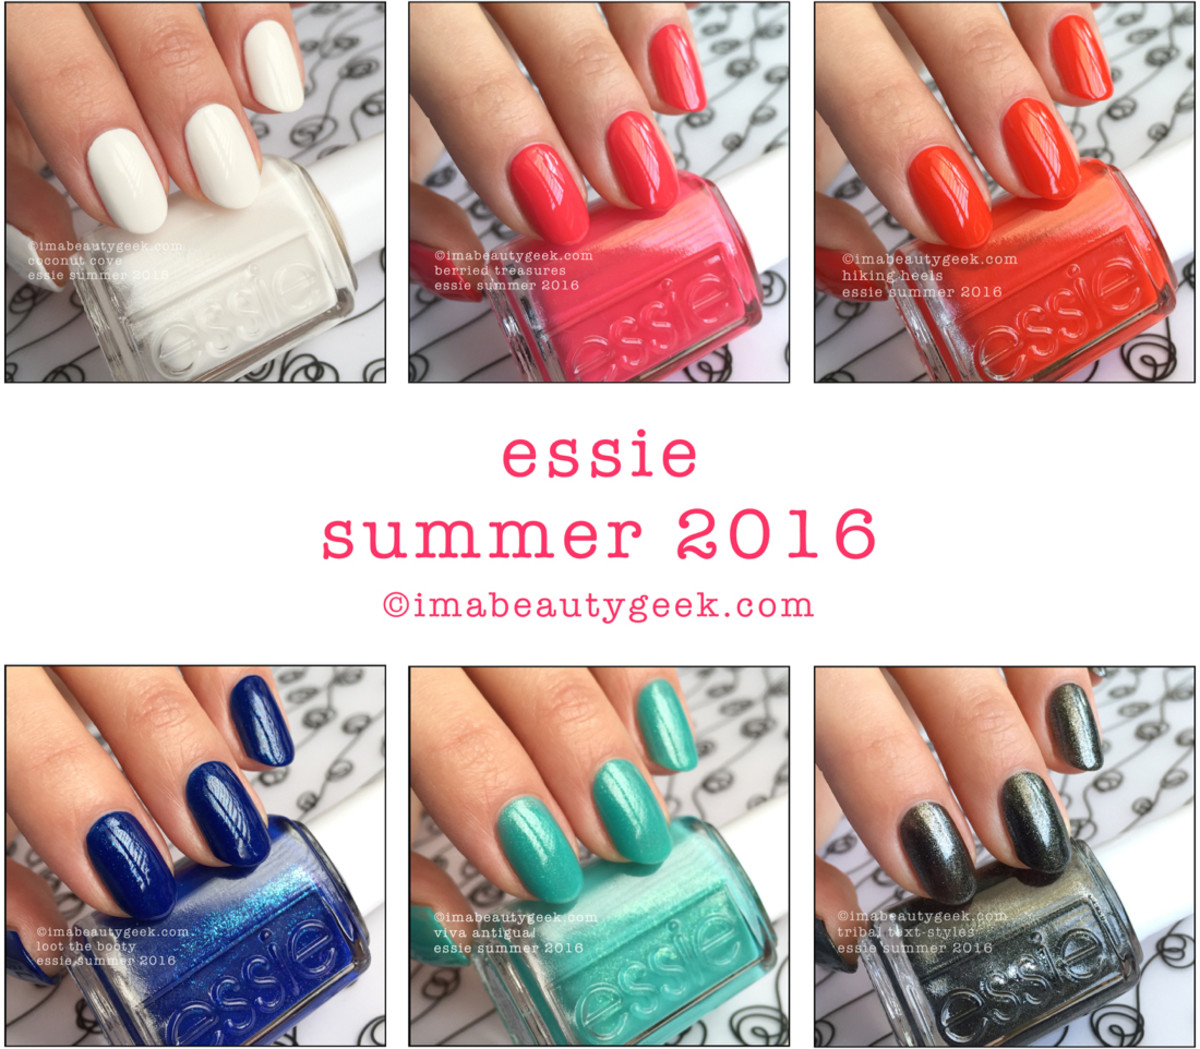 Essie Summer 2016 Swatches Review Comparisons - Version 2.jpg